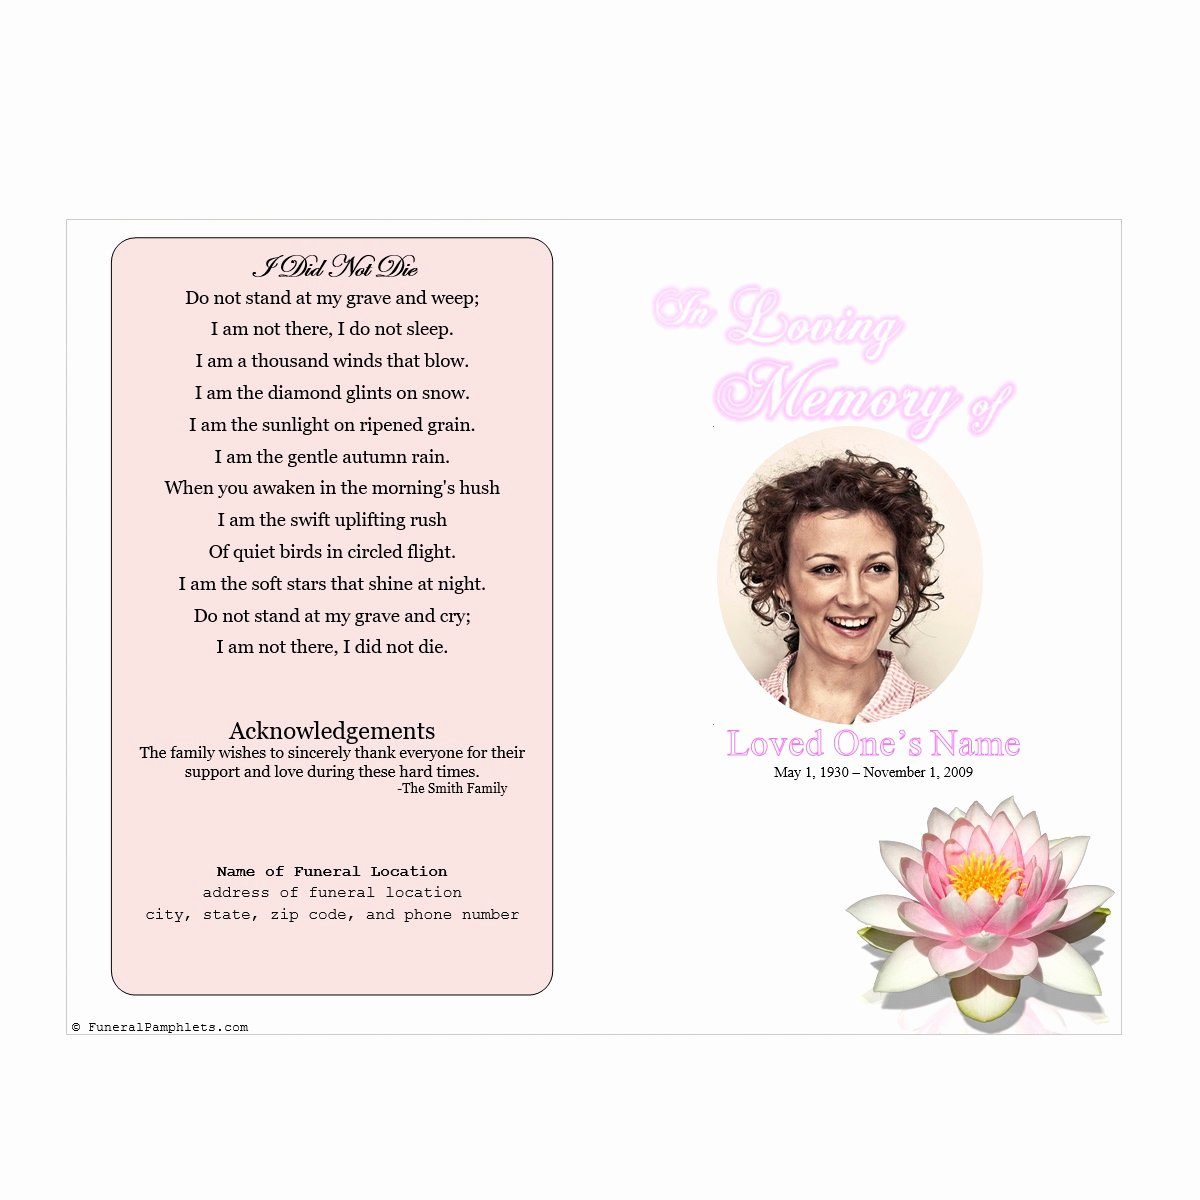 Wording for Funeral Programs Fresh Lily Single Fold Memorial Program Funeral Pamphlets